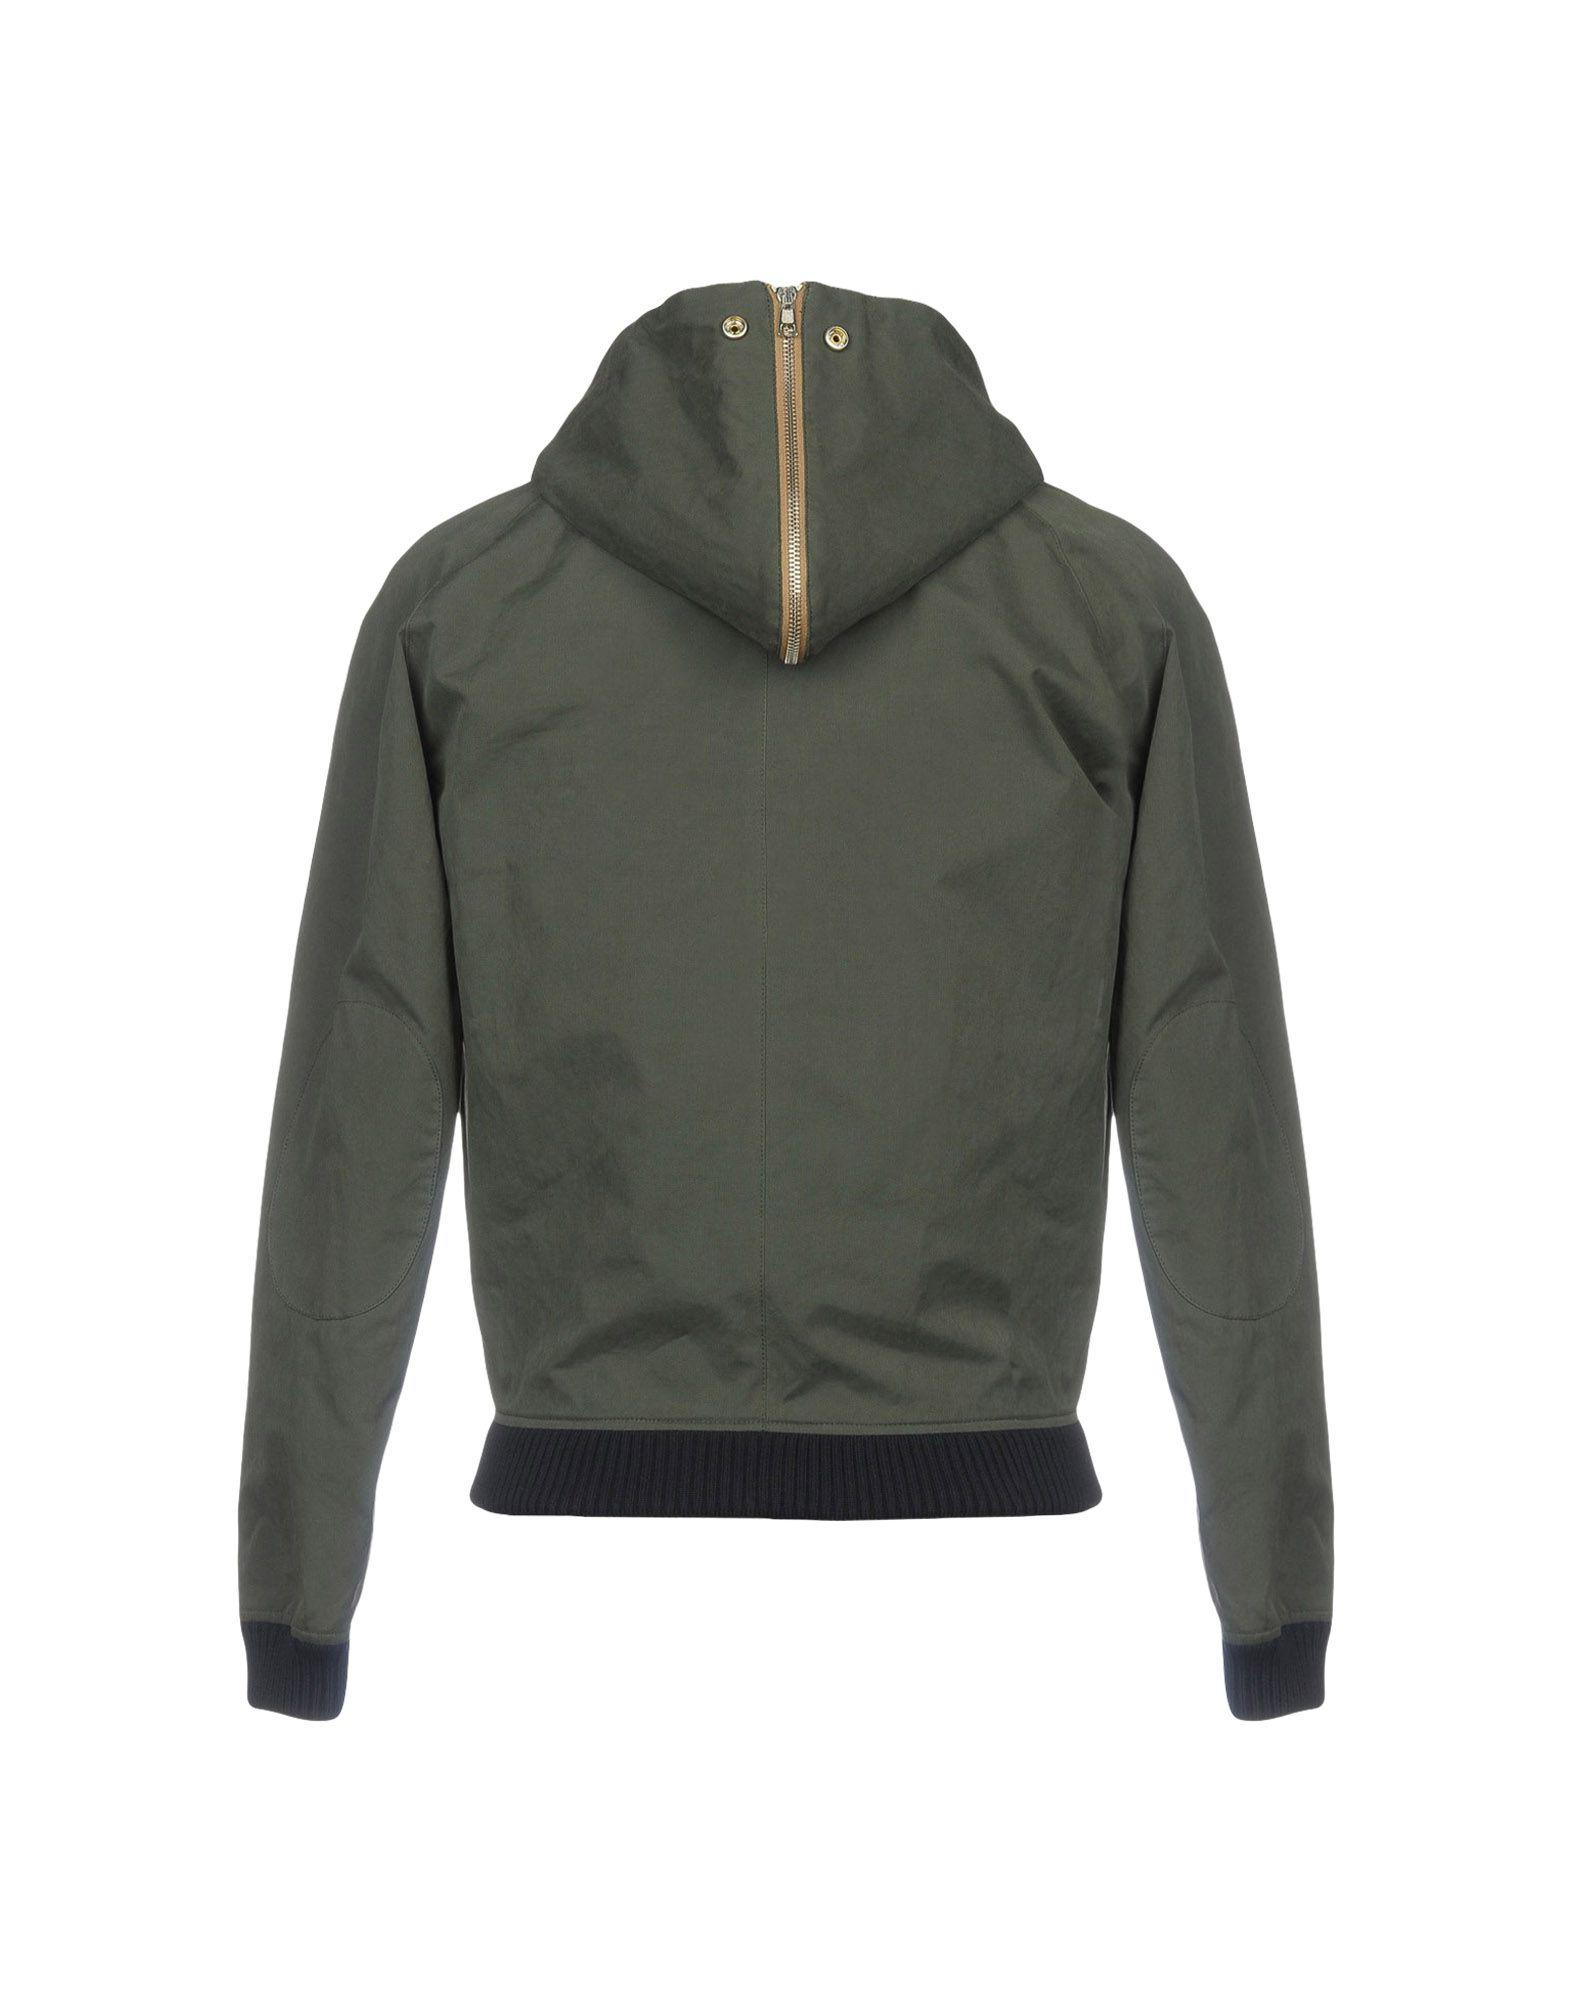 Band of Outsiders Cotton Jacket in Military Green (Green) for Men